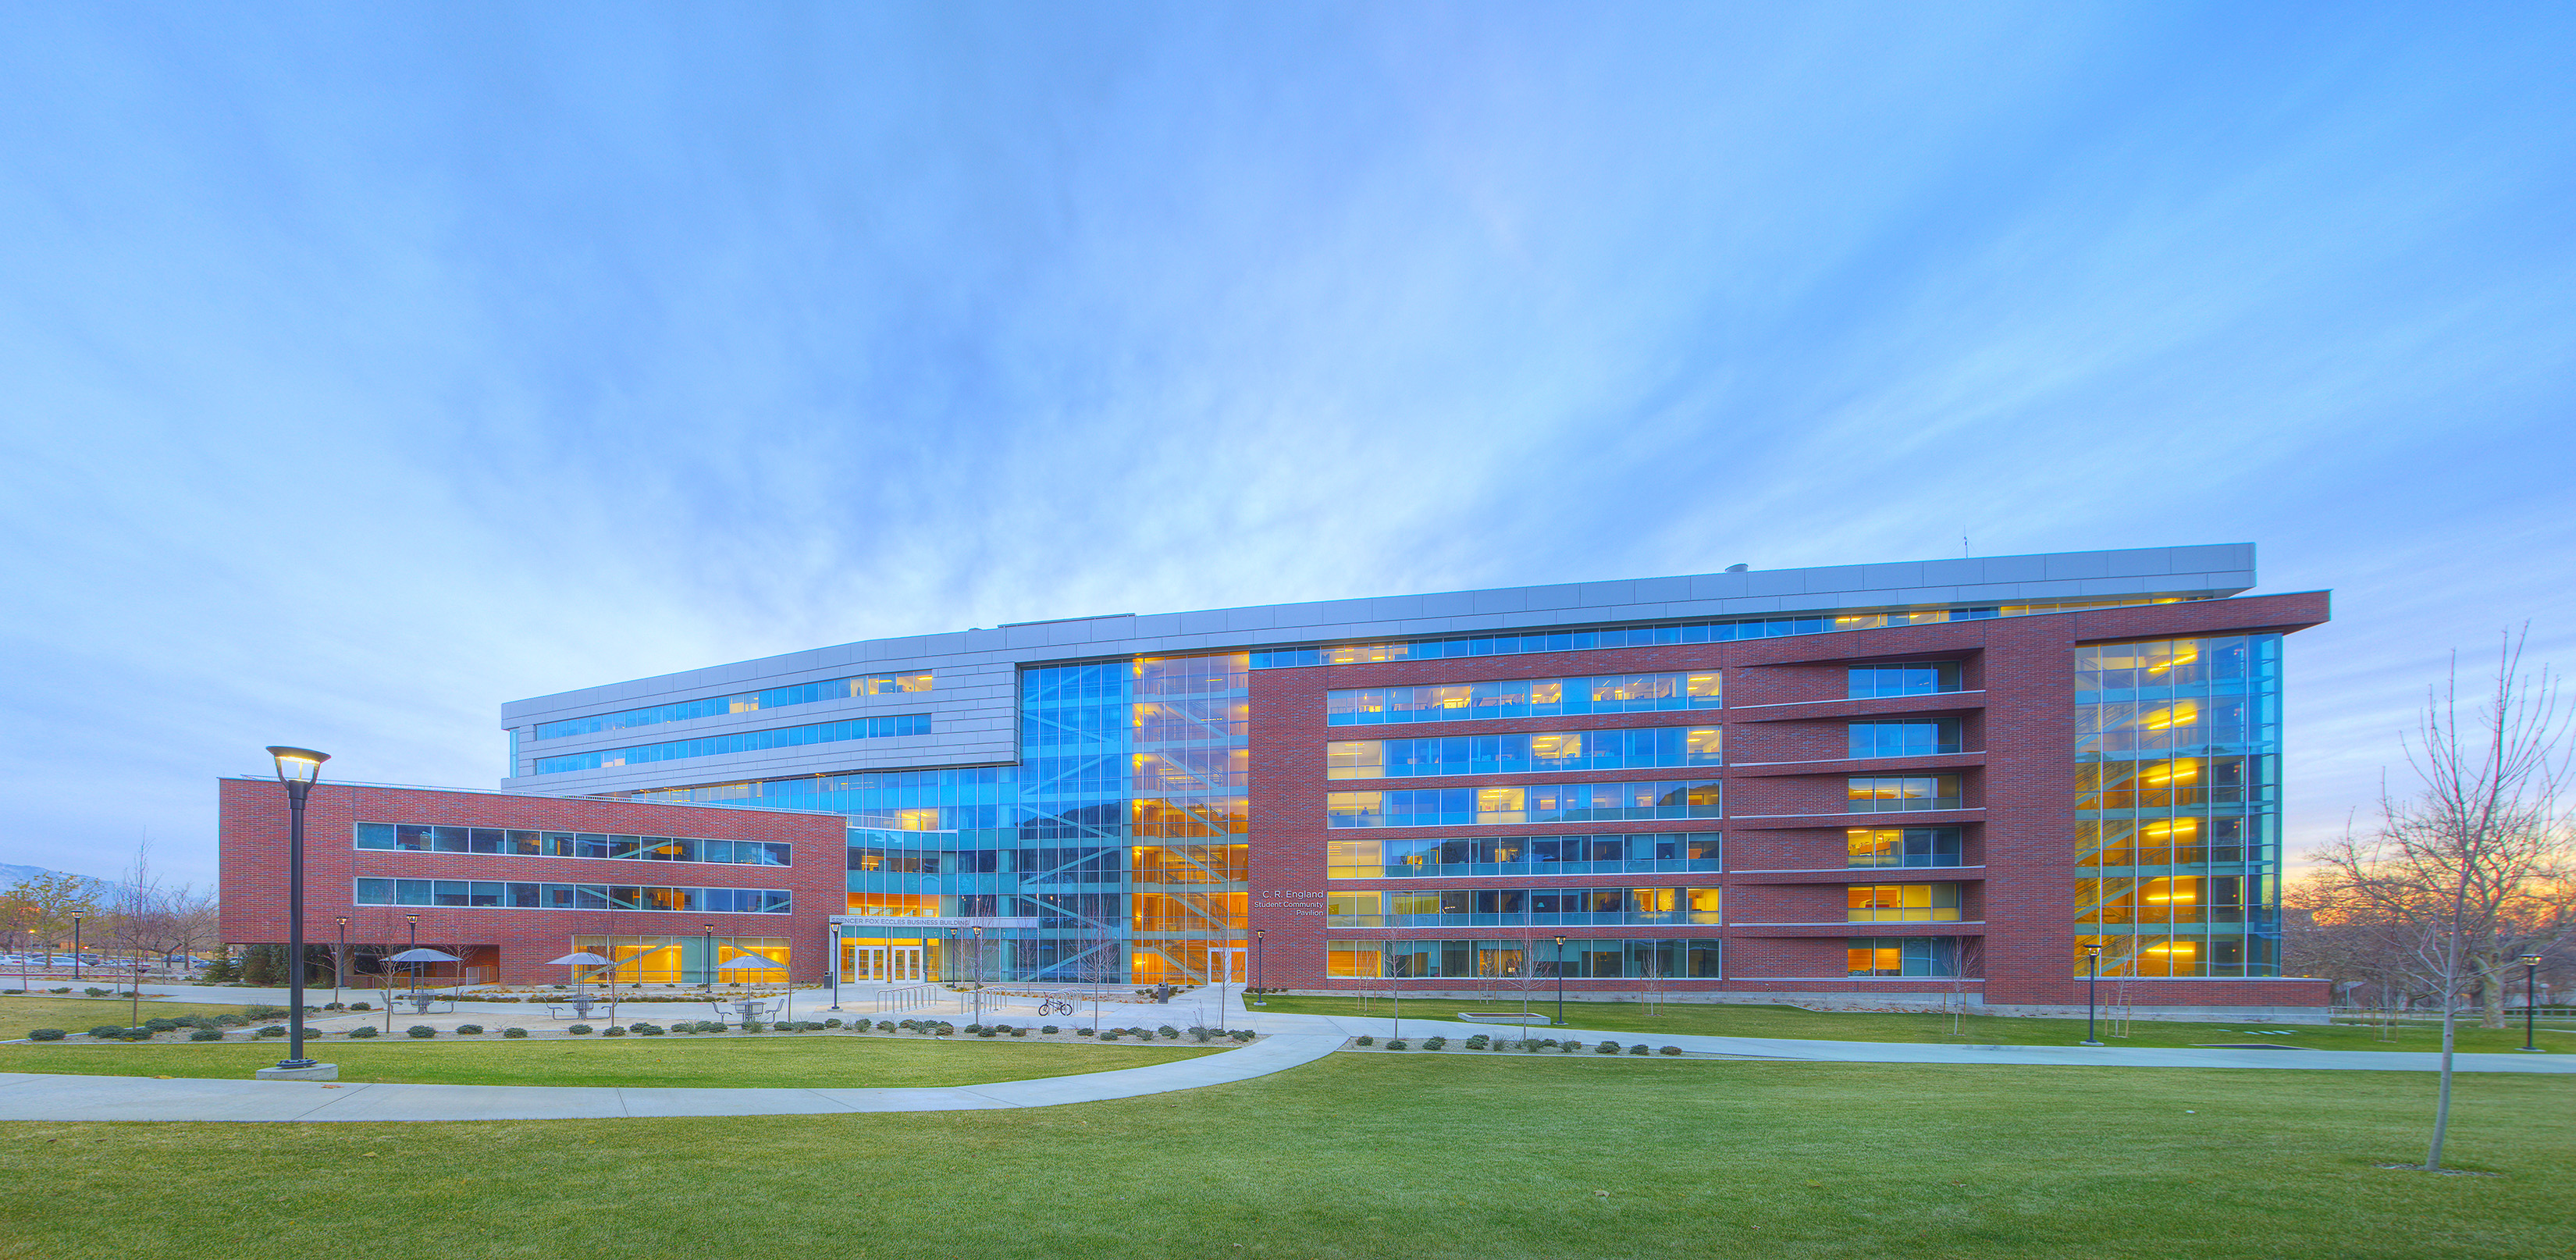 Executive MBA program at David Eccles School of Business is only Utah school ranked in top 100 by the Financial Times.